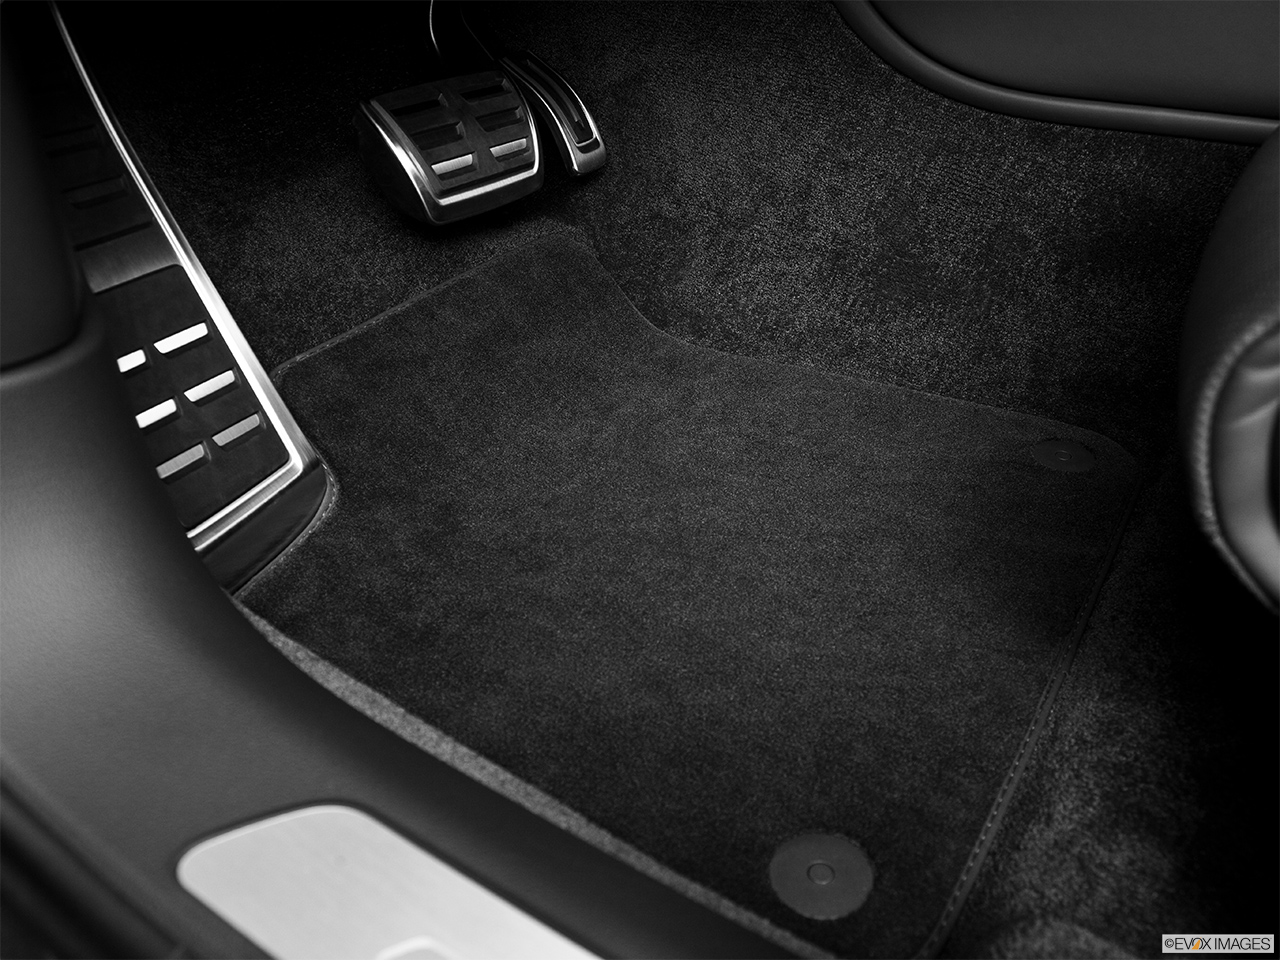 2014 Audi S8 4.0 TFSI Driver's floor mat and pedals. Mid-seat level from outside looking in.